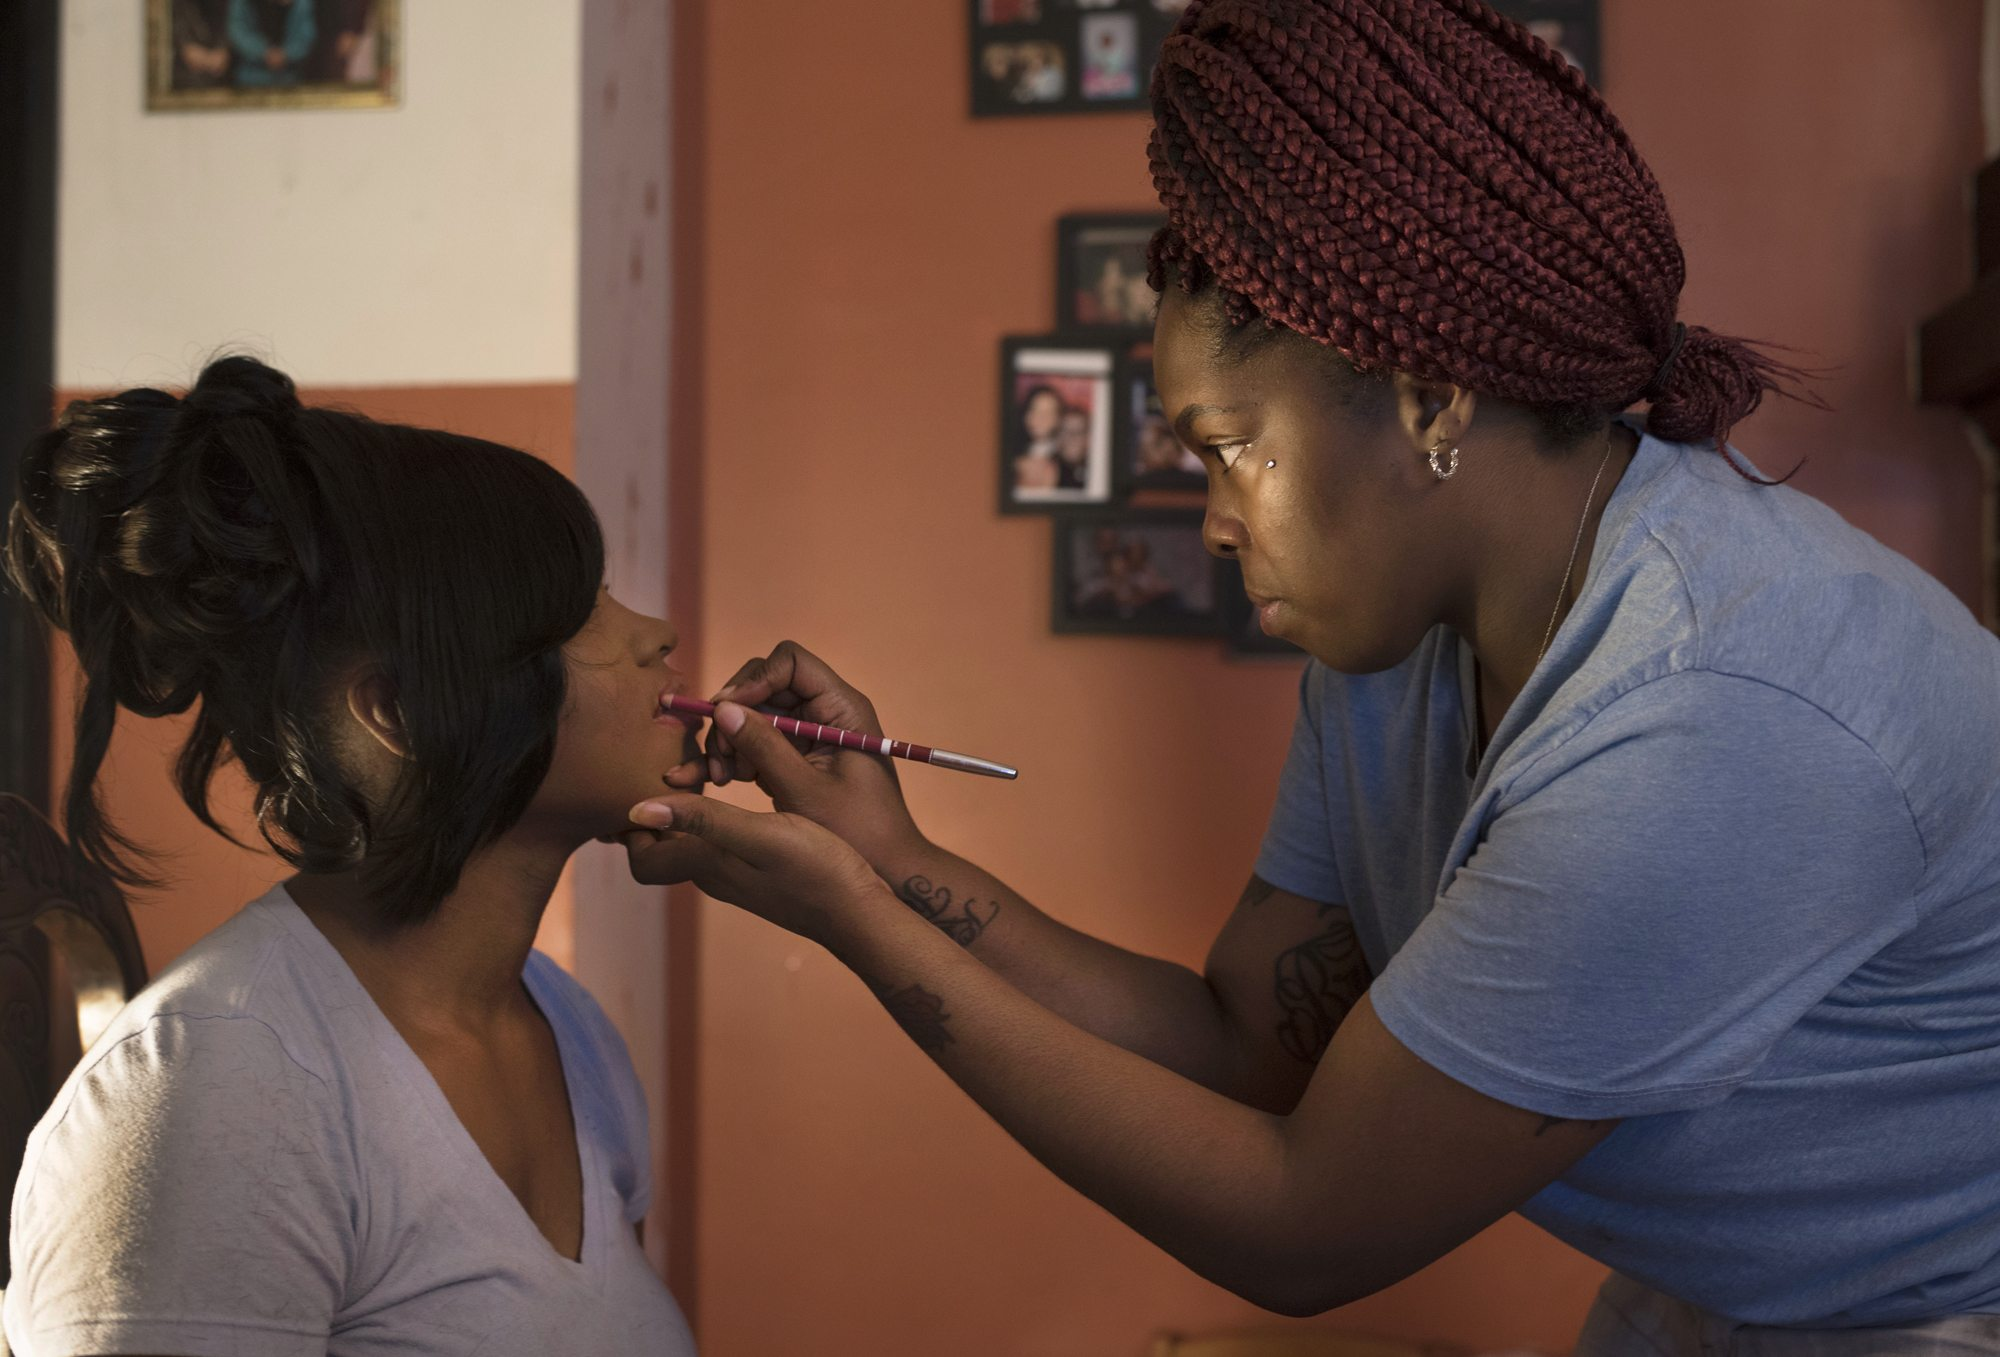 Michelle White (right) applies lip liner to Tyneisha Wilder during preparations East Allegheny High School's prom at Tyneisha's foster home in Wilkinsburg. (Photo by Martha Rial/PublicSource)